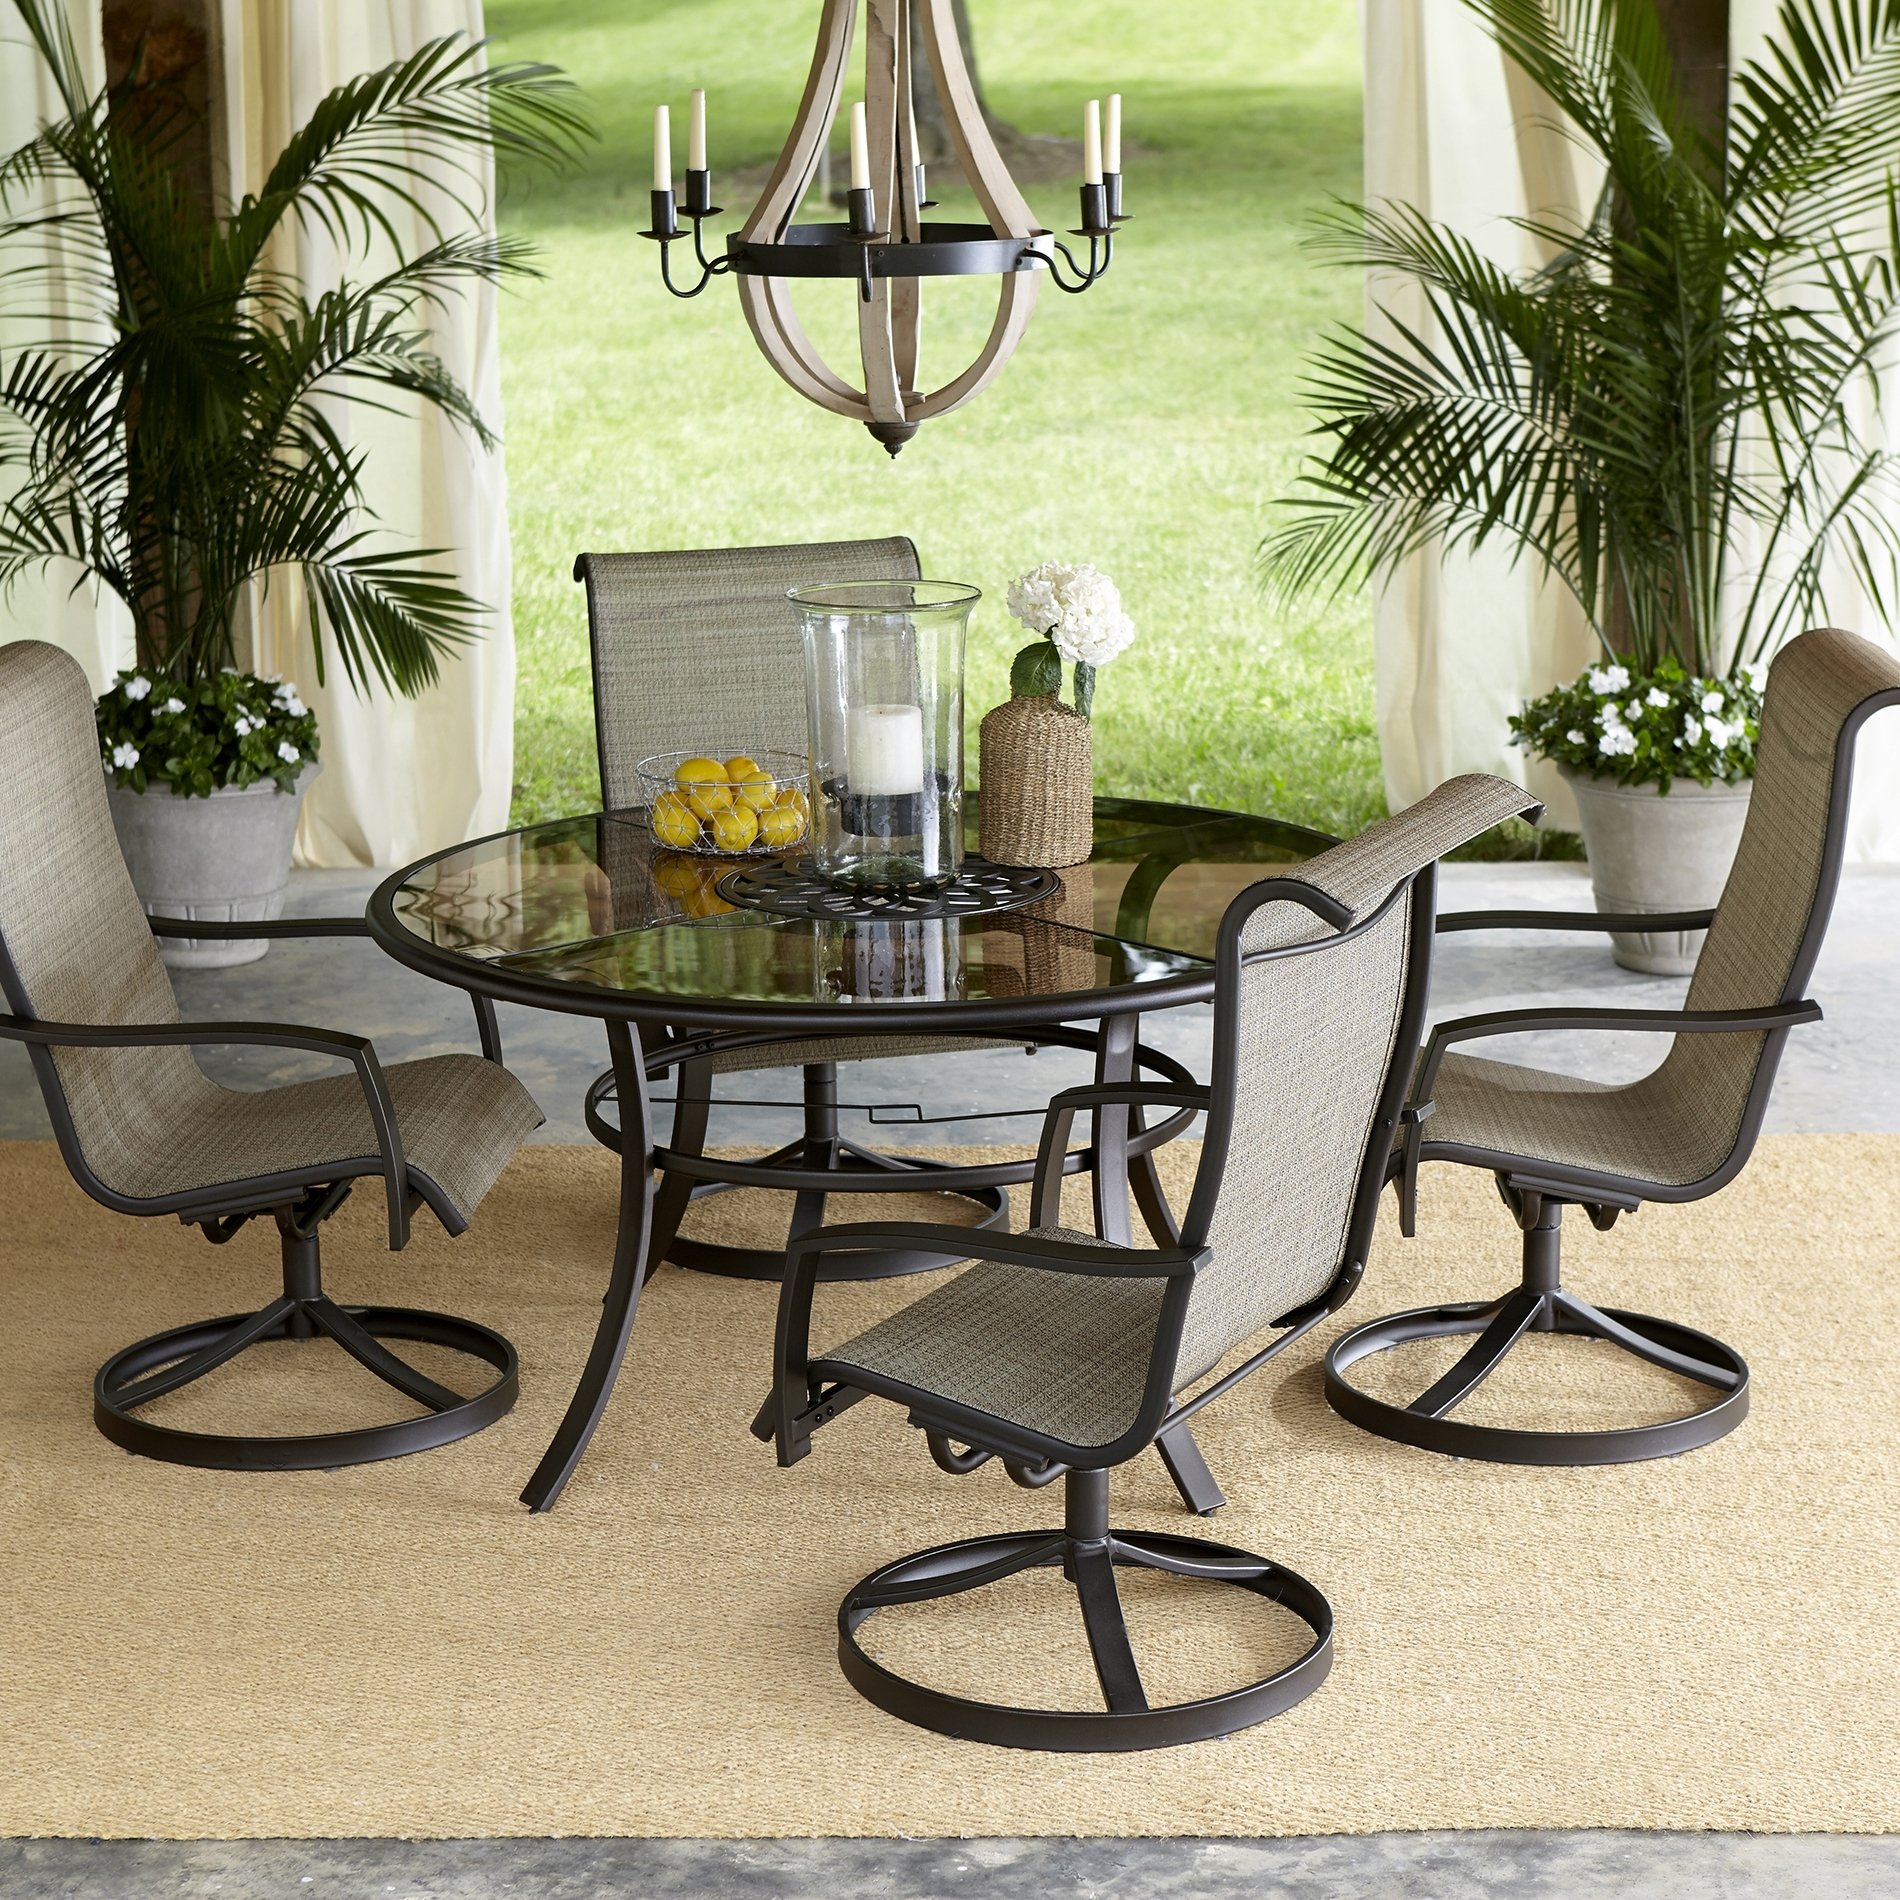 Most Recent Patio Dining Sets Round Table Furniture Alluring Beautiful Tables Within Patio Conversation Sets With Dining Table (View 14 of 20)